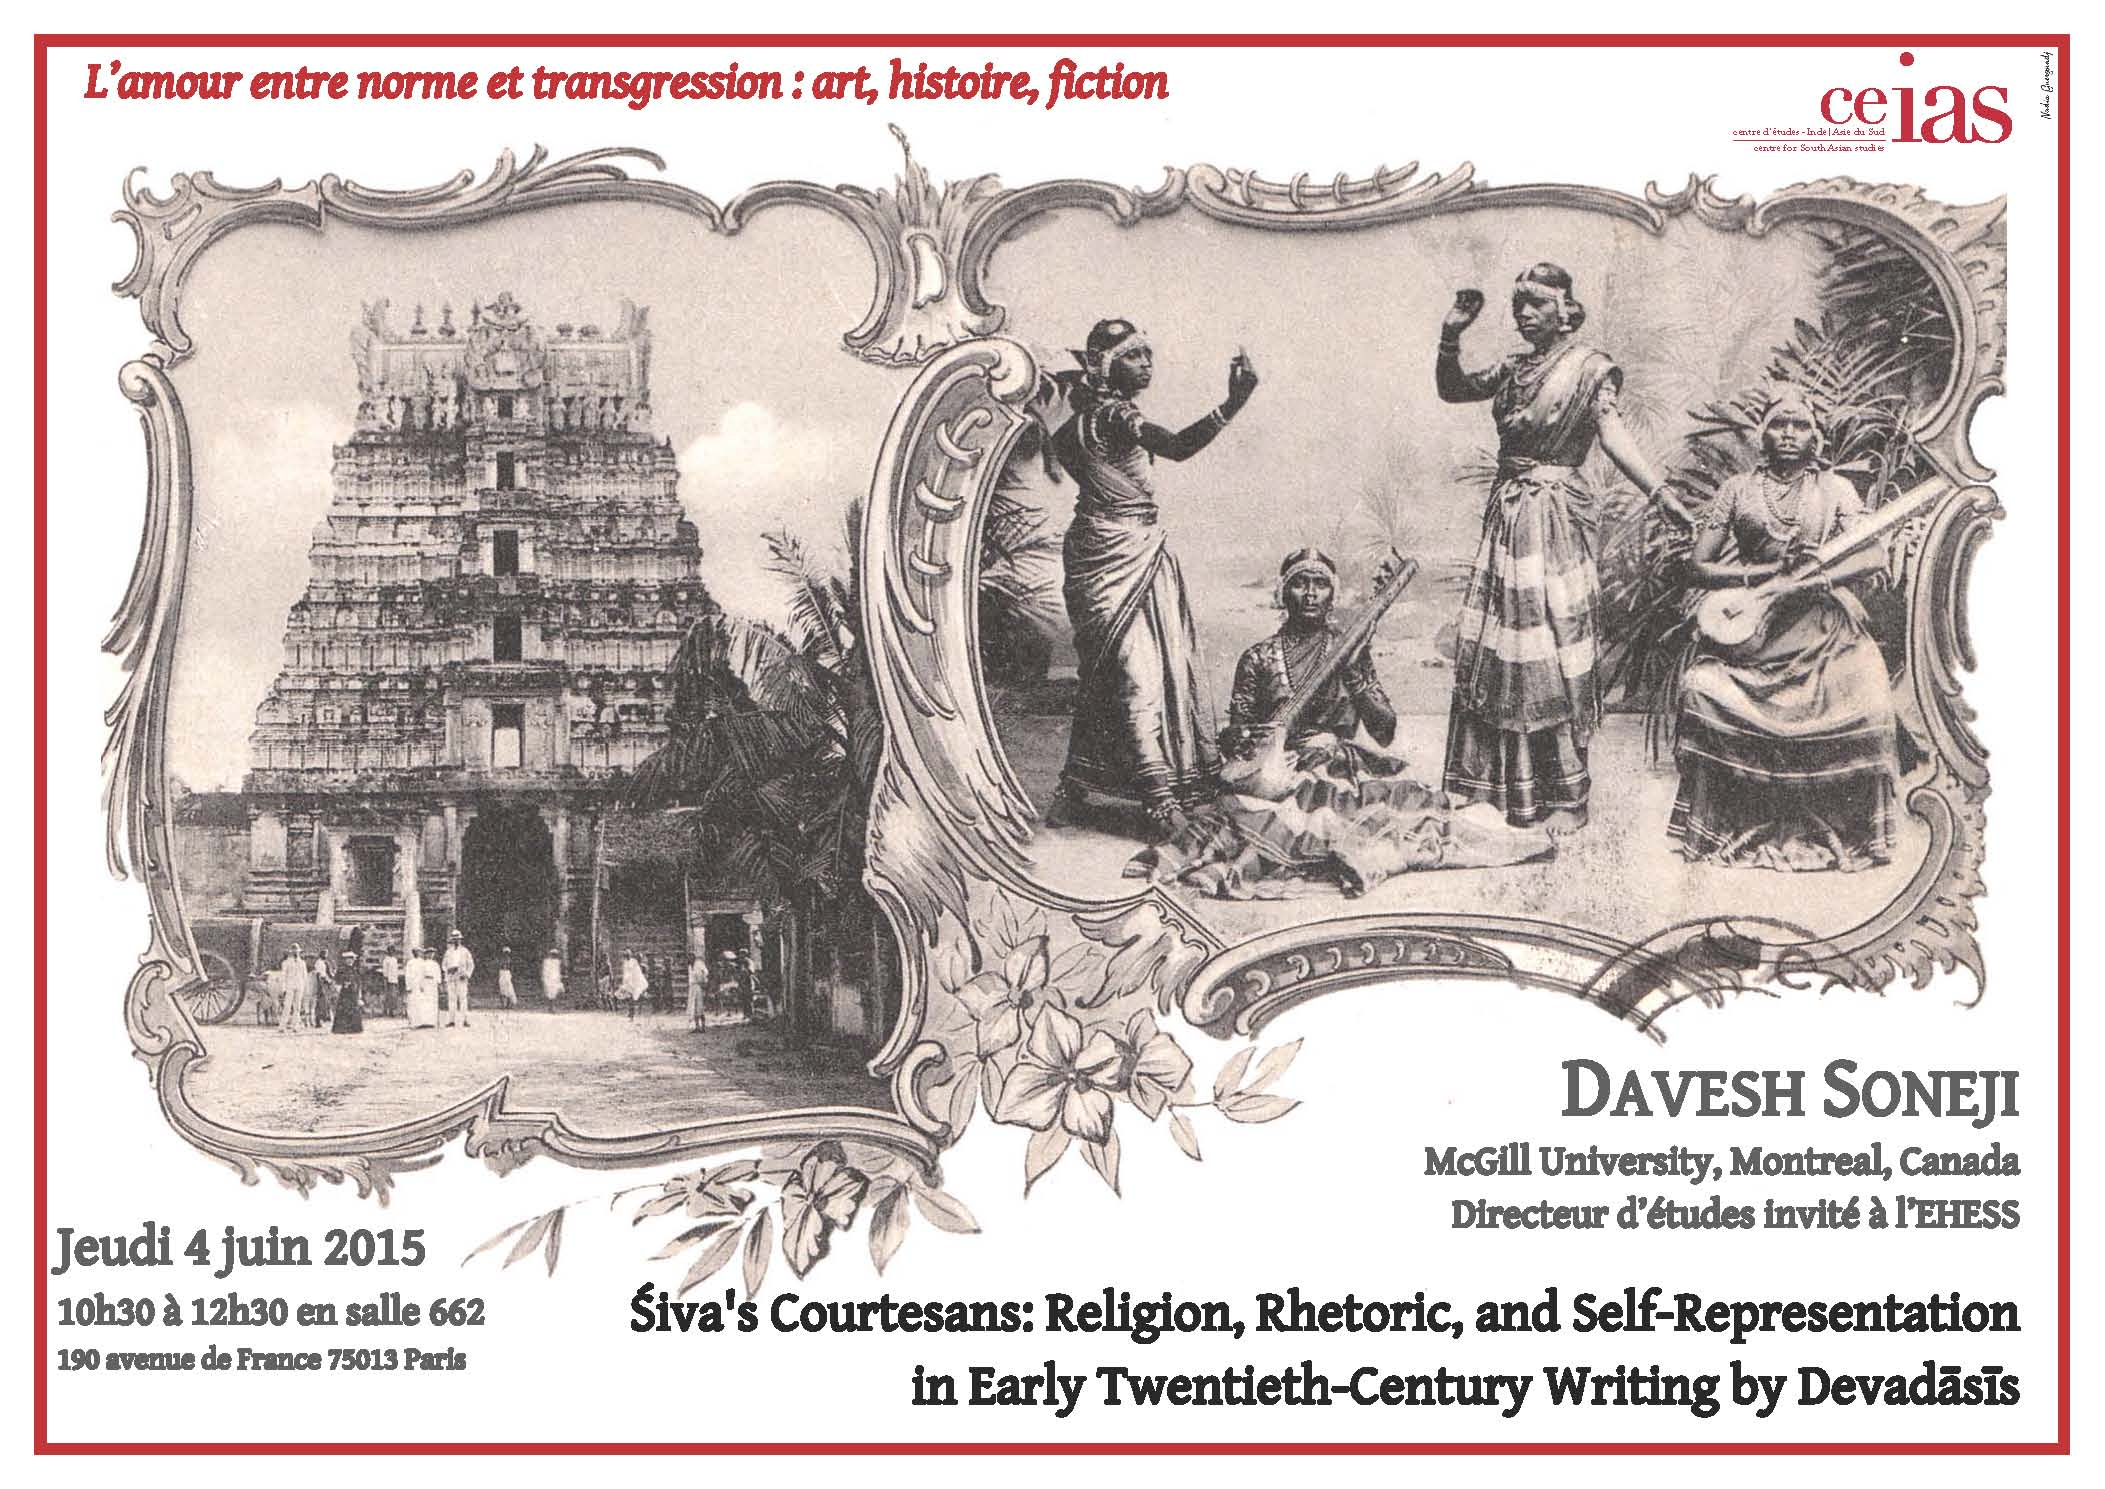 Śiva's Courtesans: Religion, Rhetoric, and Self-Representation  in Early Twentieth-Century Writing by Devadāsīs